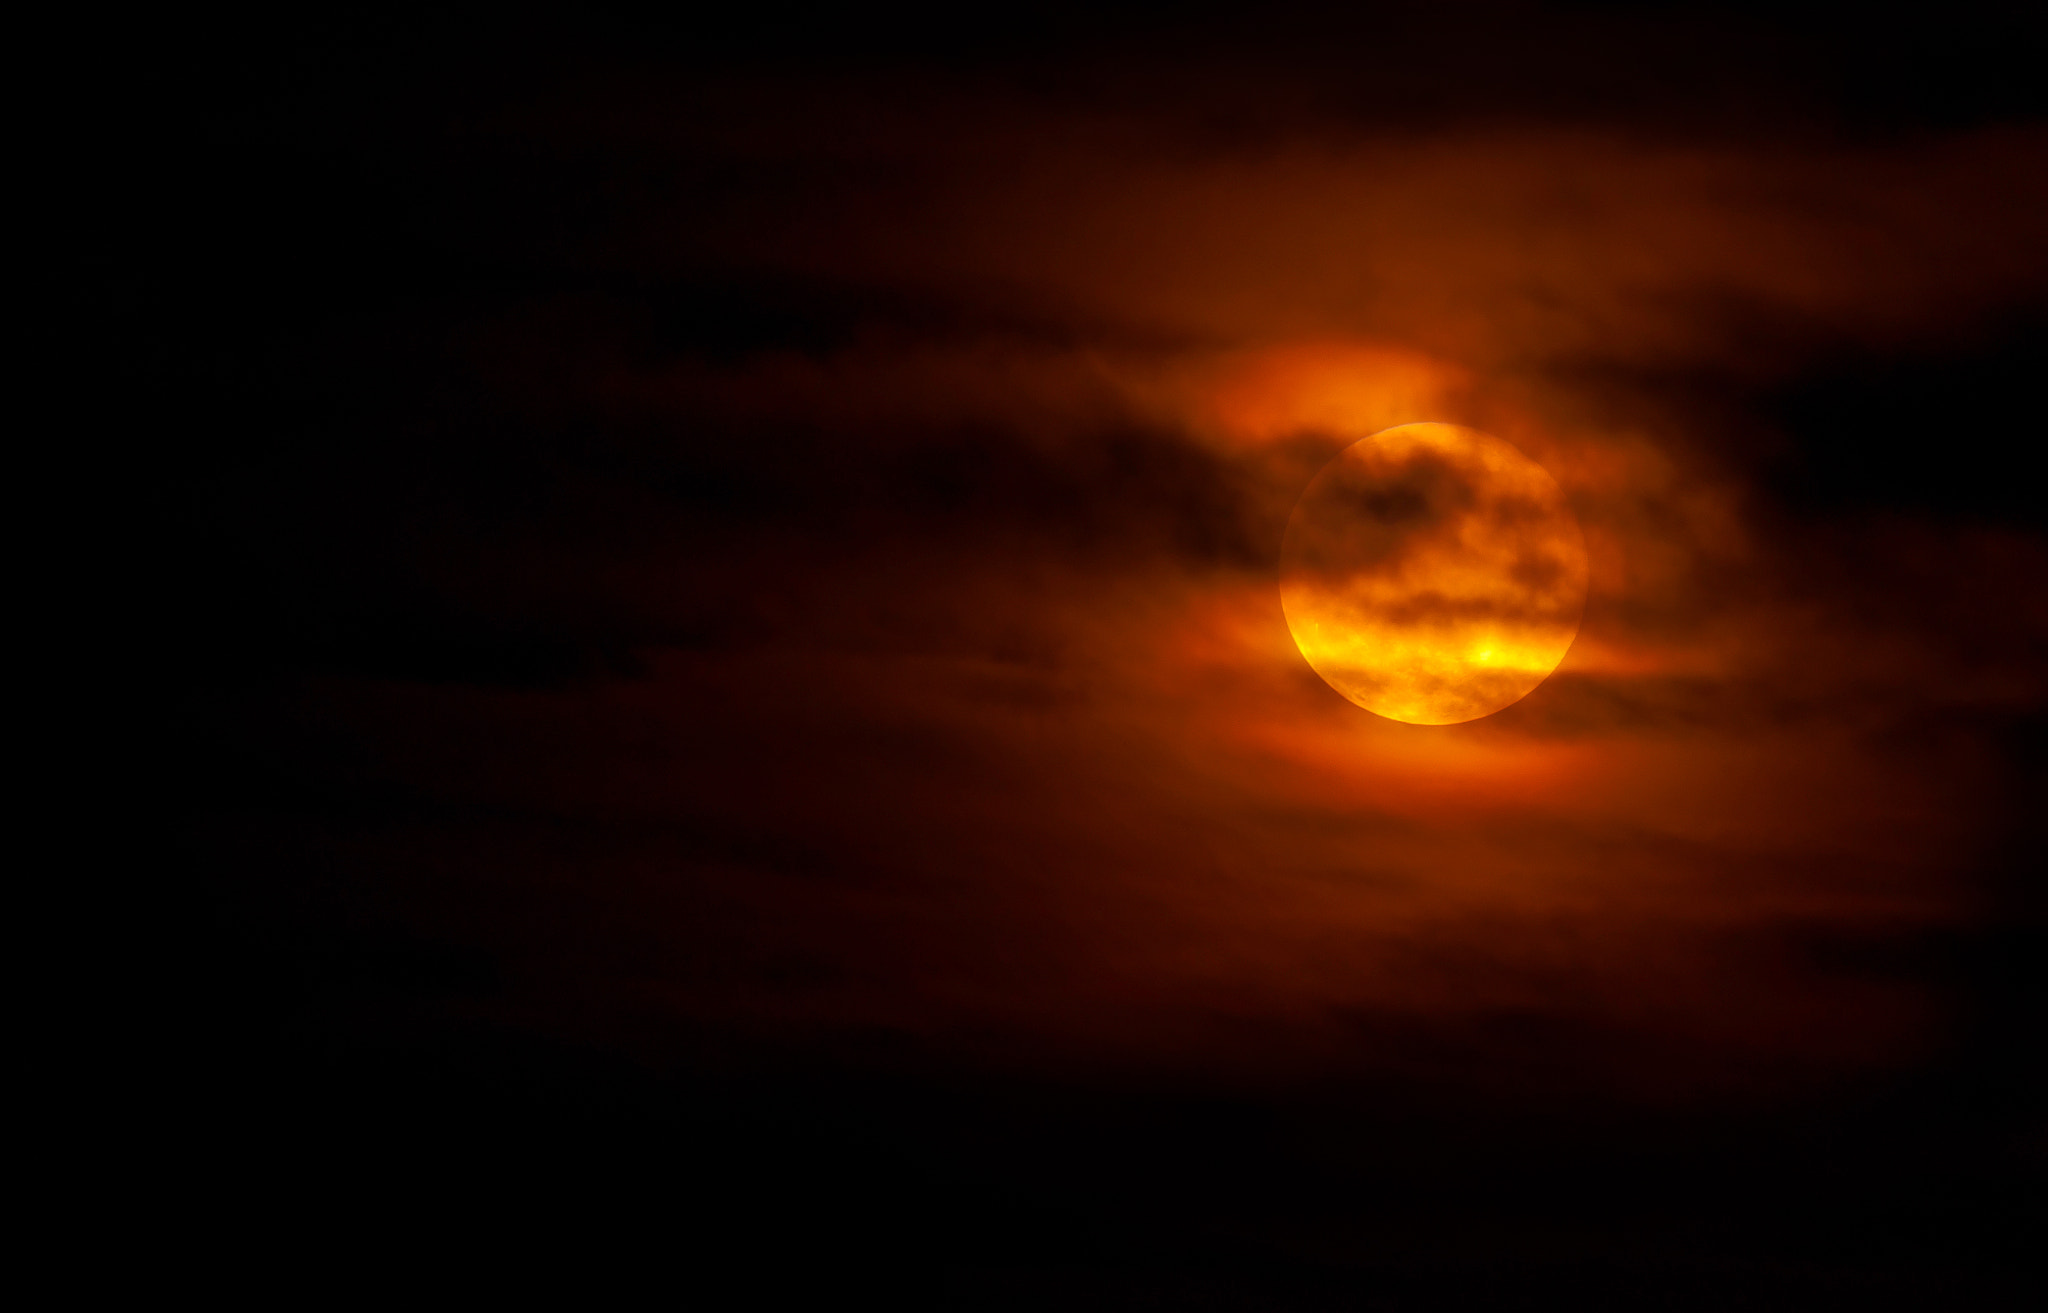 Photograph Moon on Fire by Jeff Graham on 500px